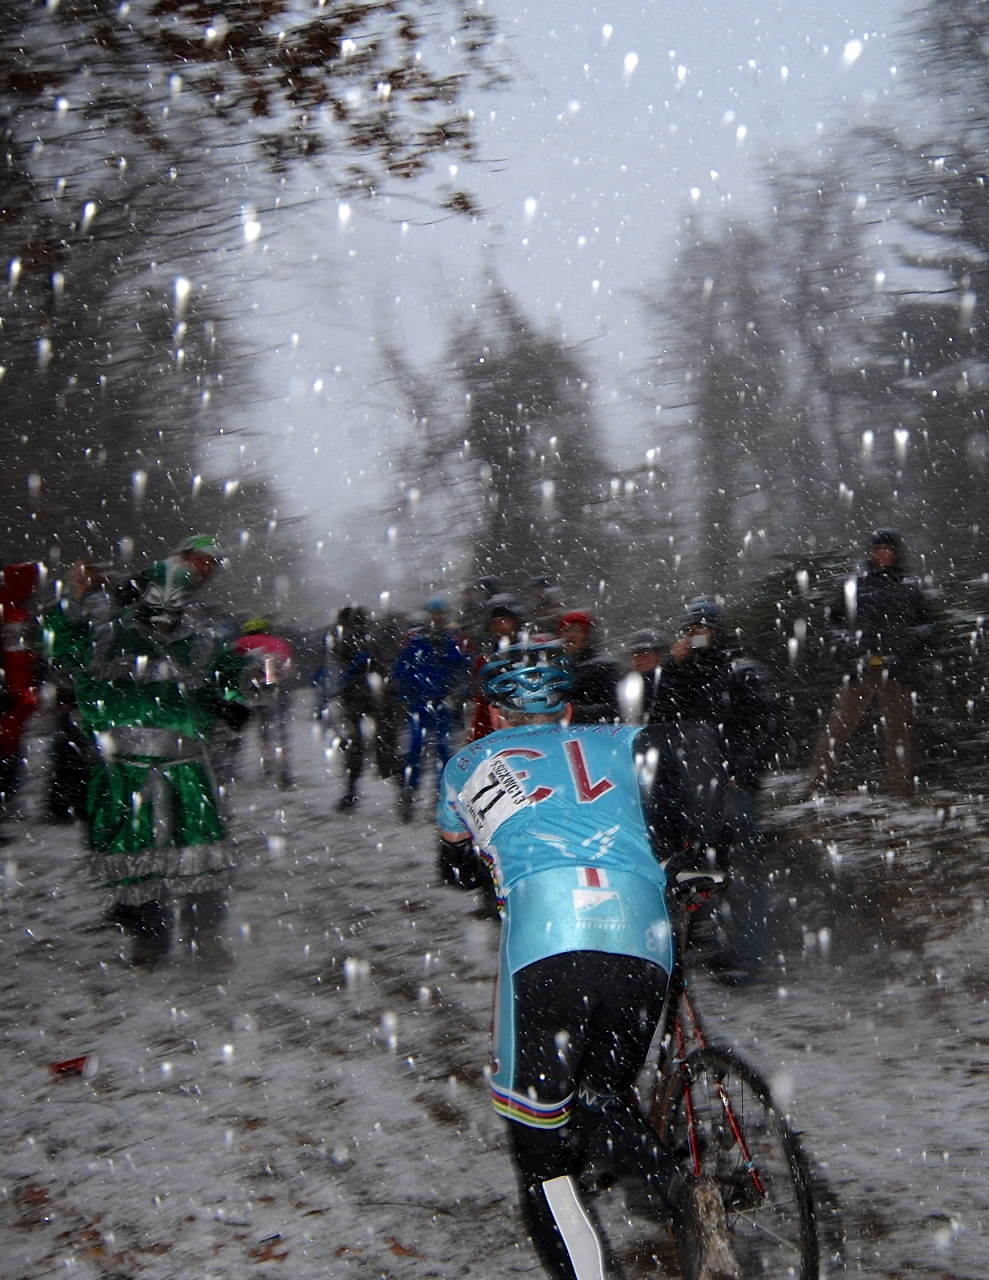 Fans Cheer at Snowy Climb